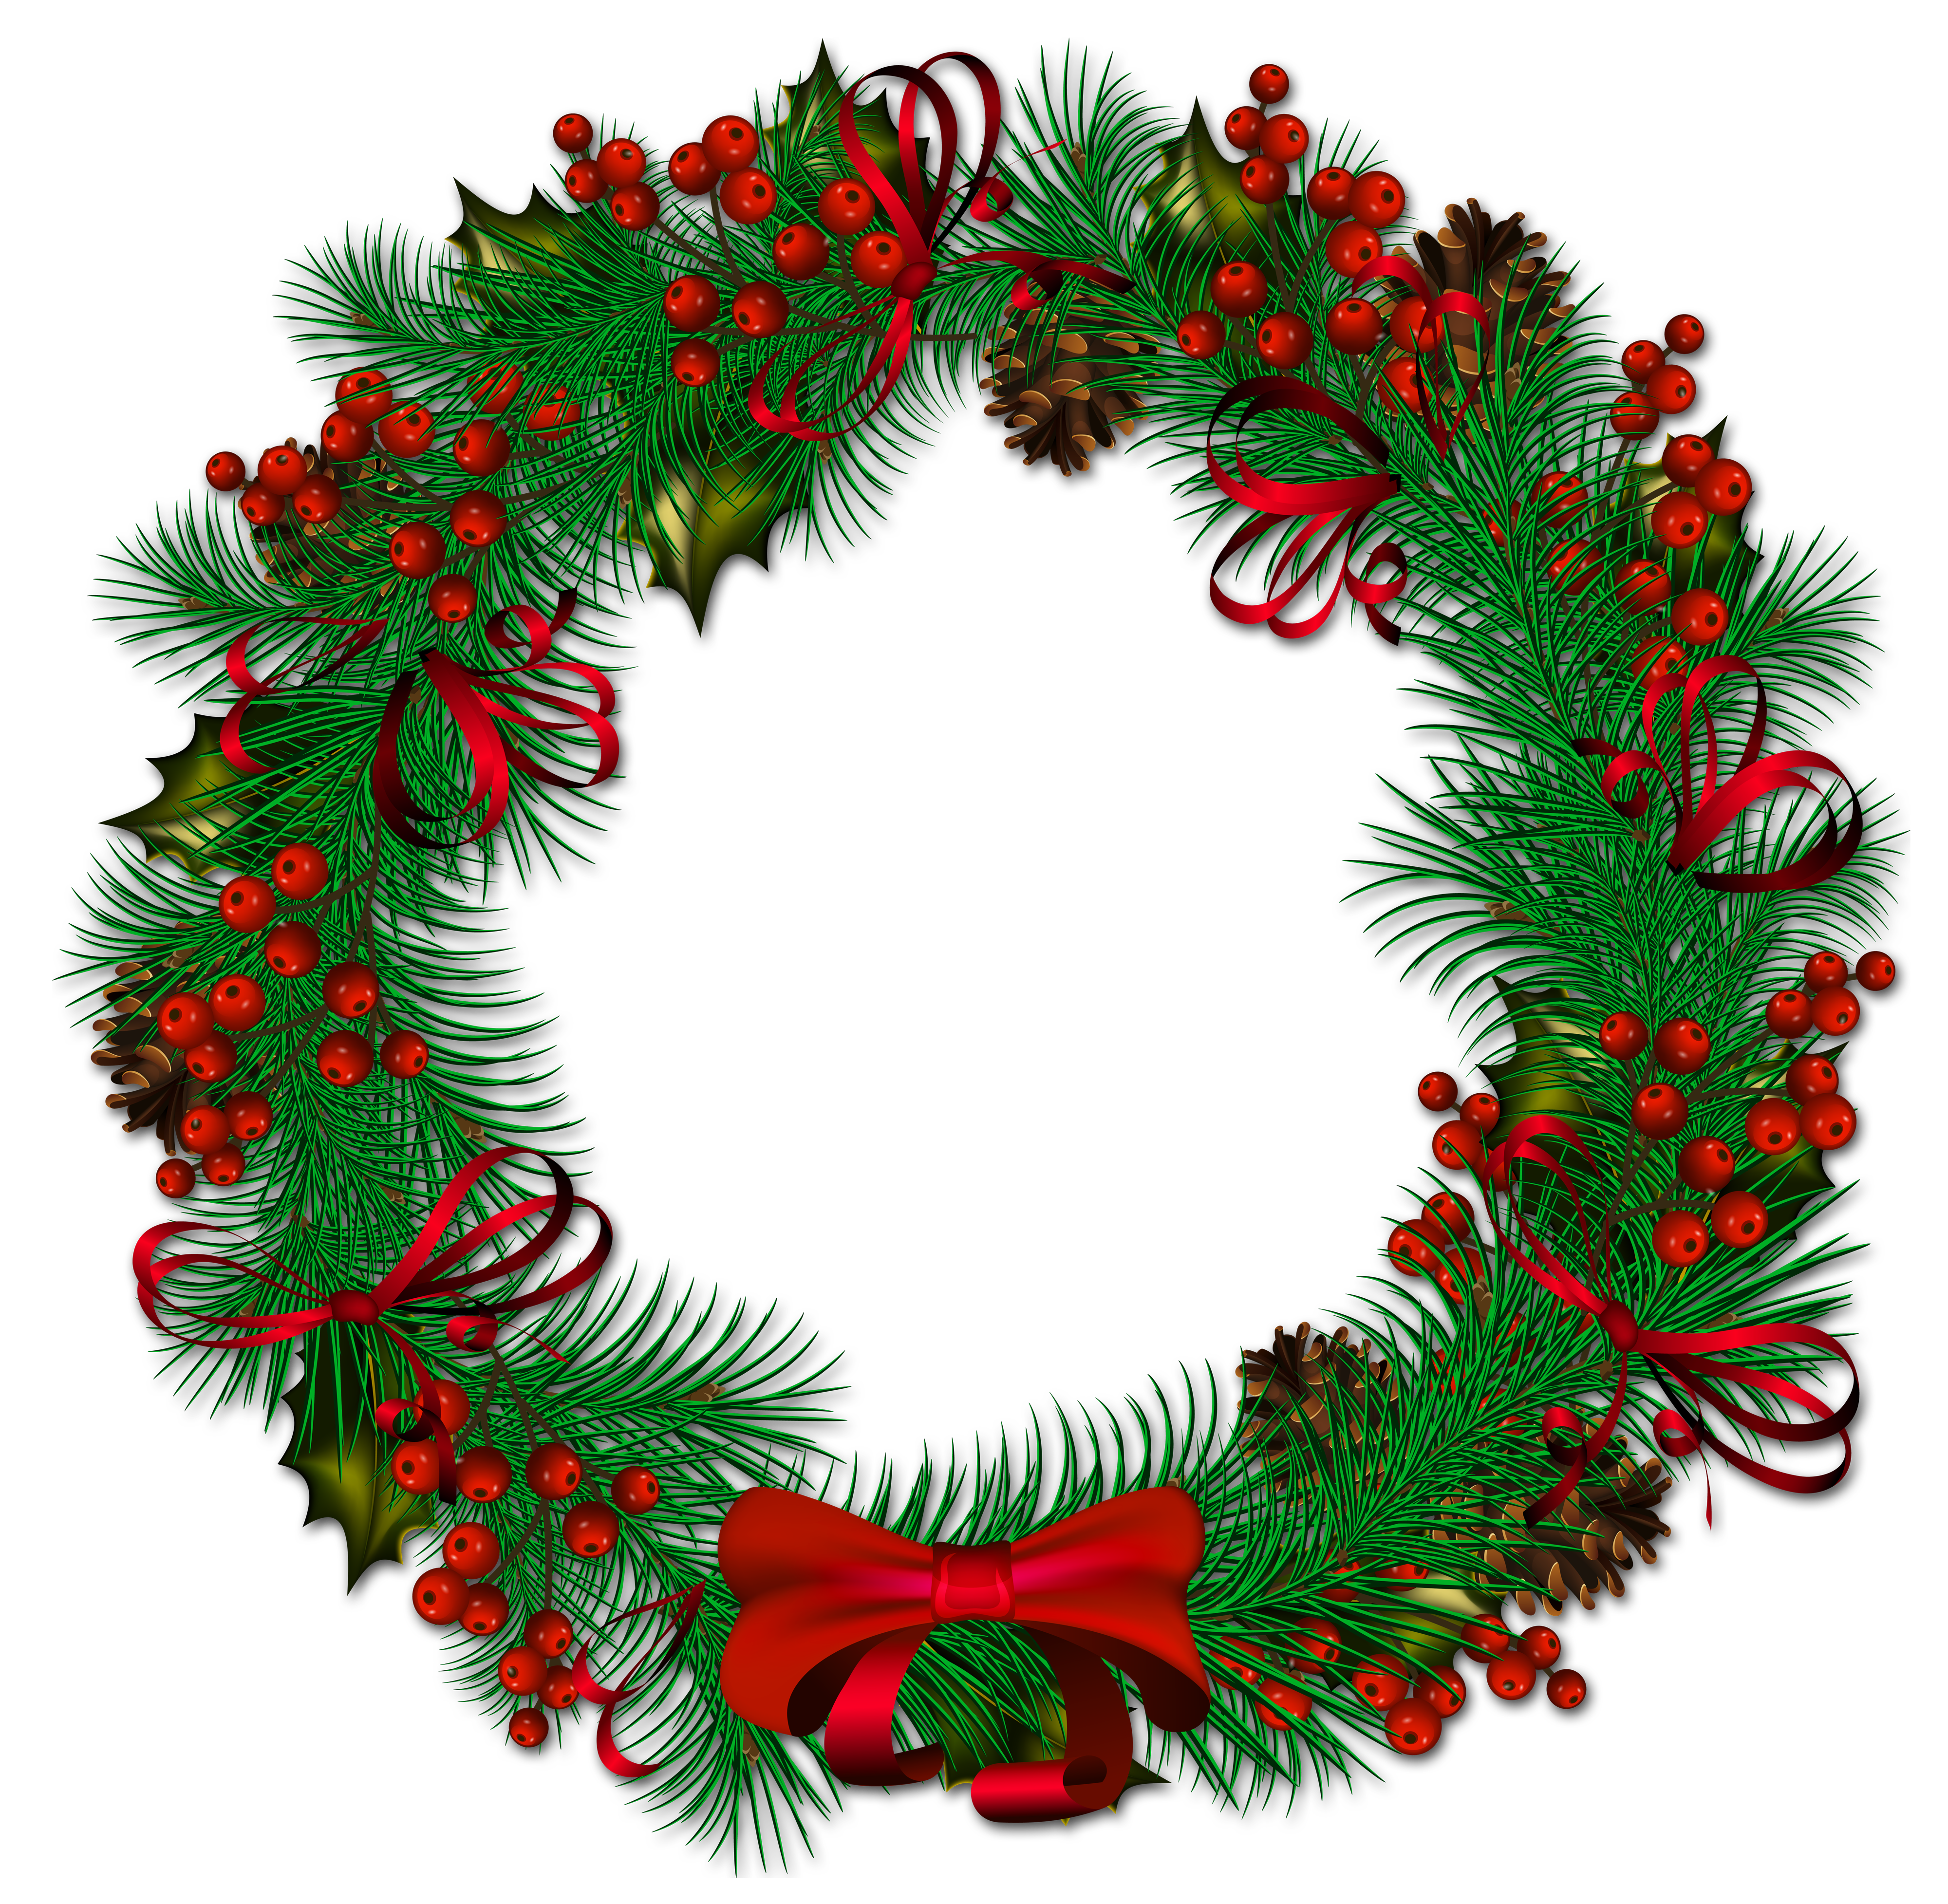 Free christmas wreath border clipart black and white Free Christmas Wreath Clipart | Free download best Free Christmas ... black and white